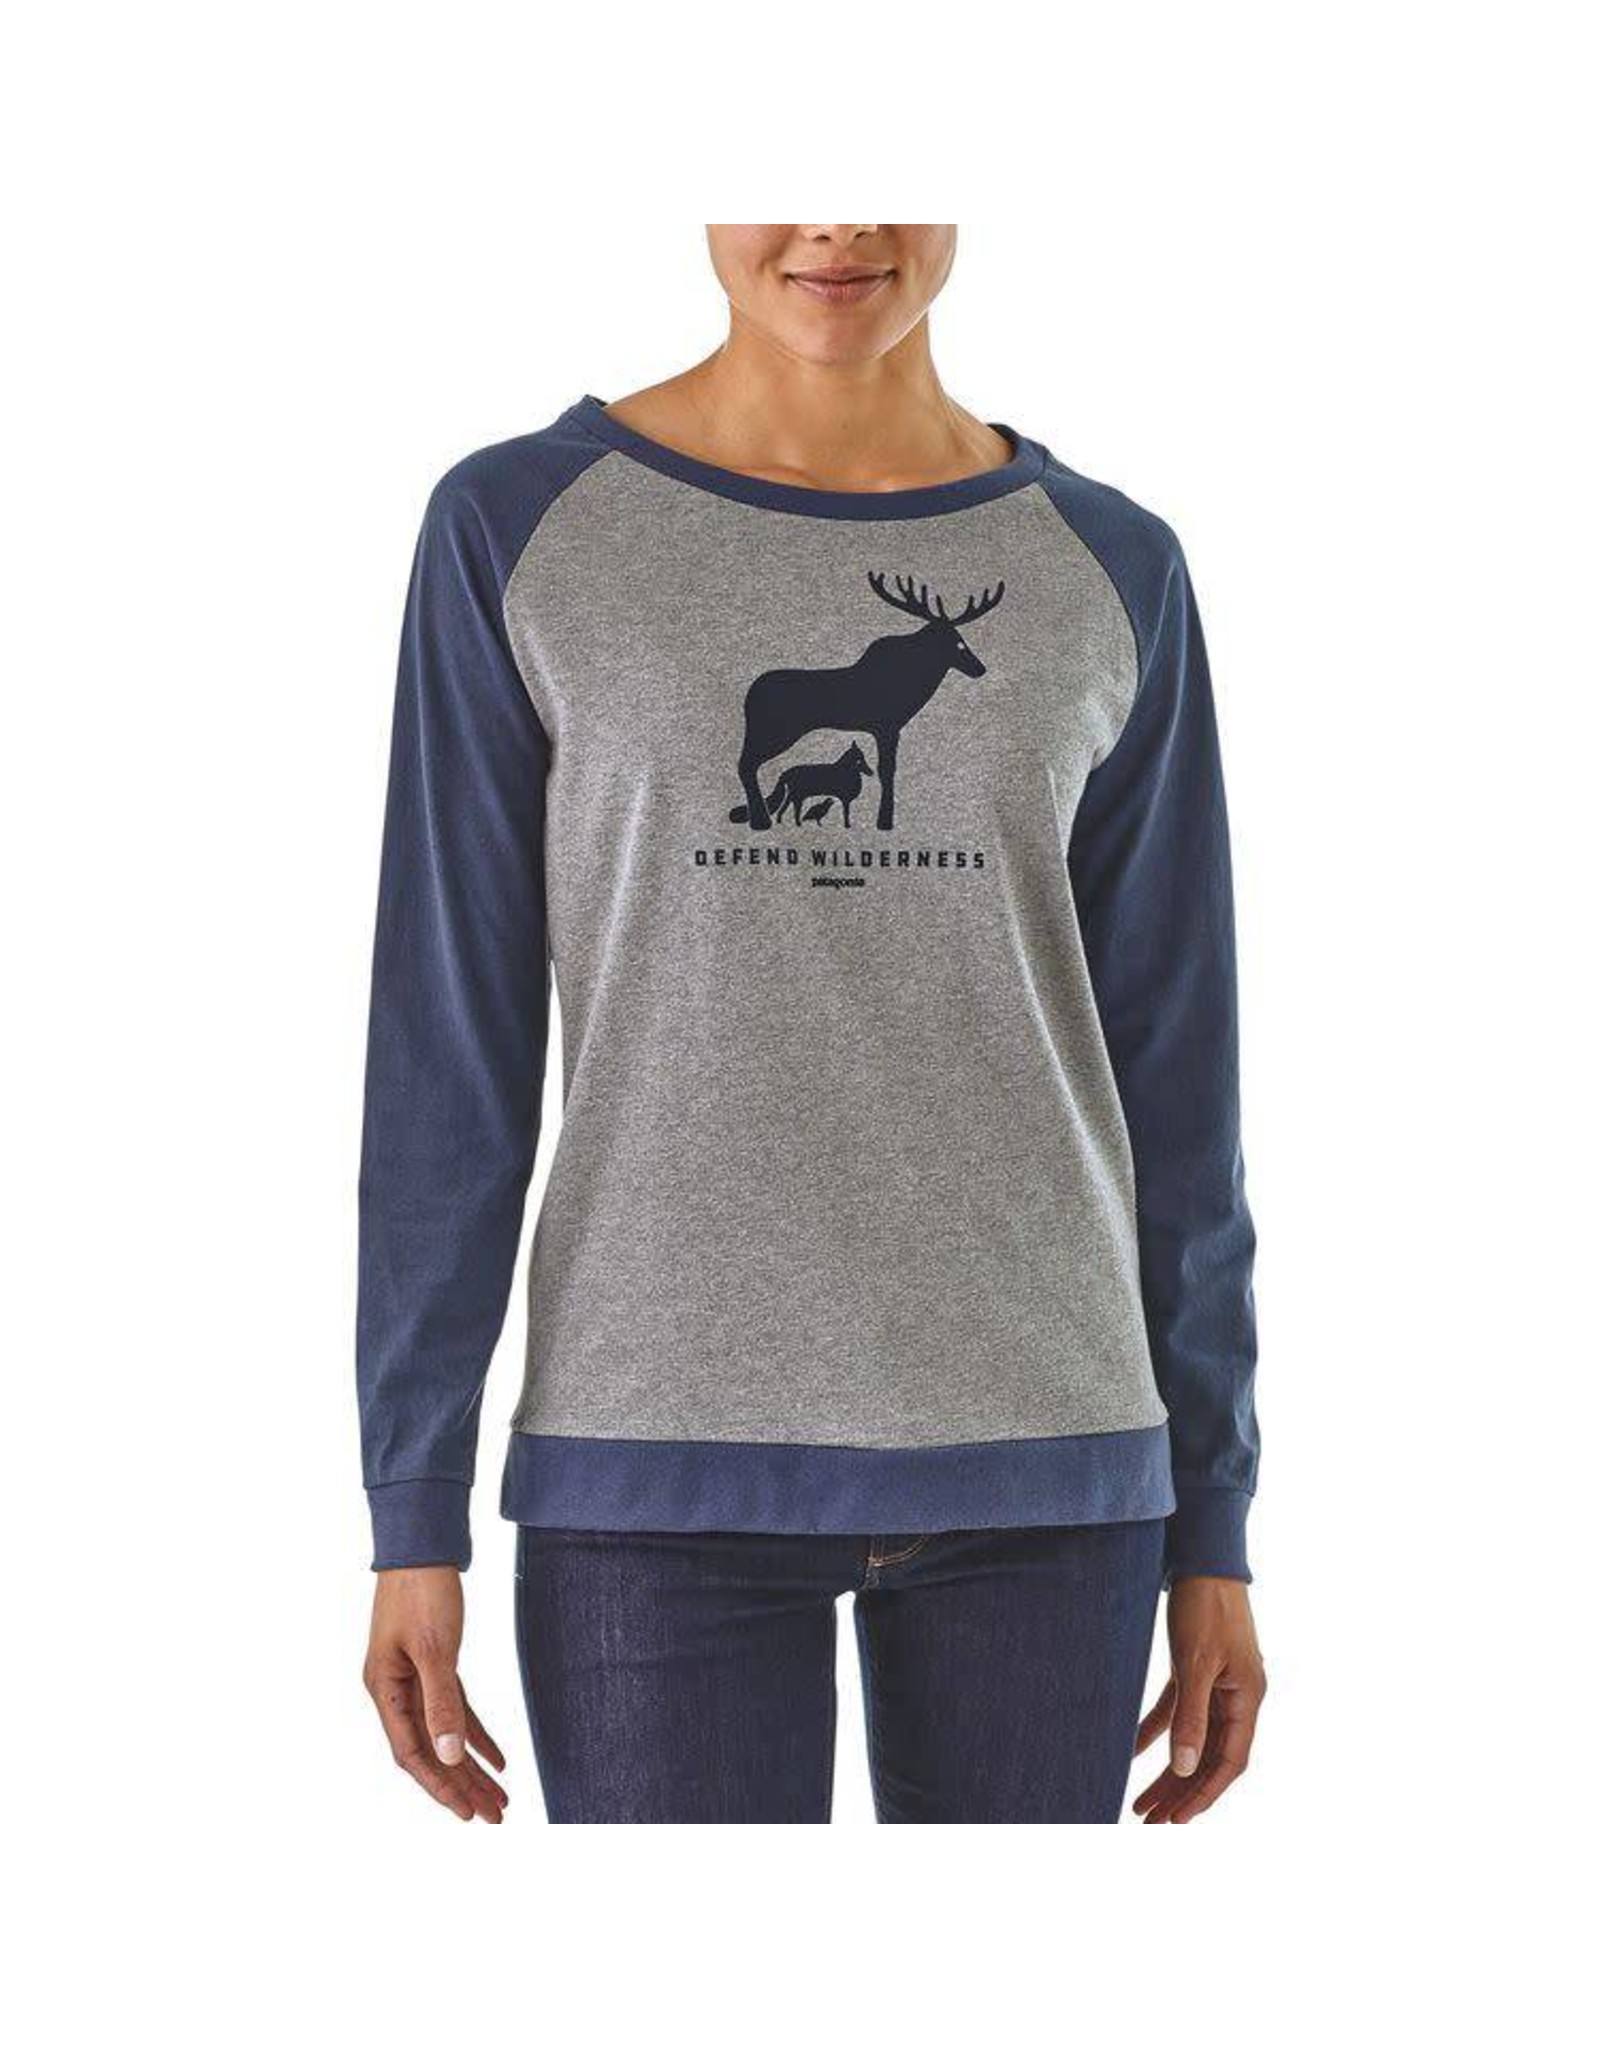 Patagonia W's Patagonia L/S Defend Wilderness Responsibili-Tee